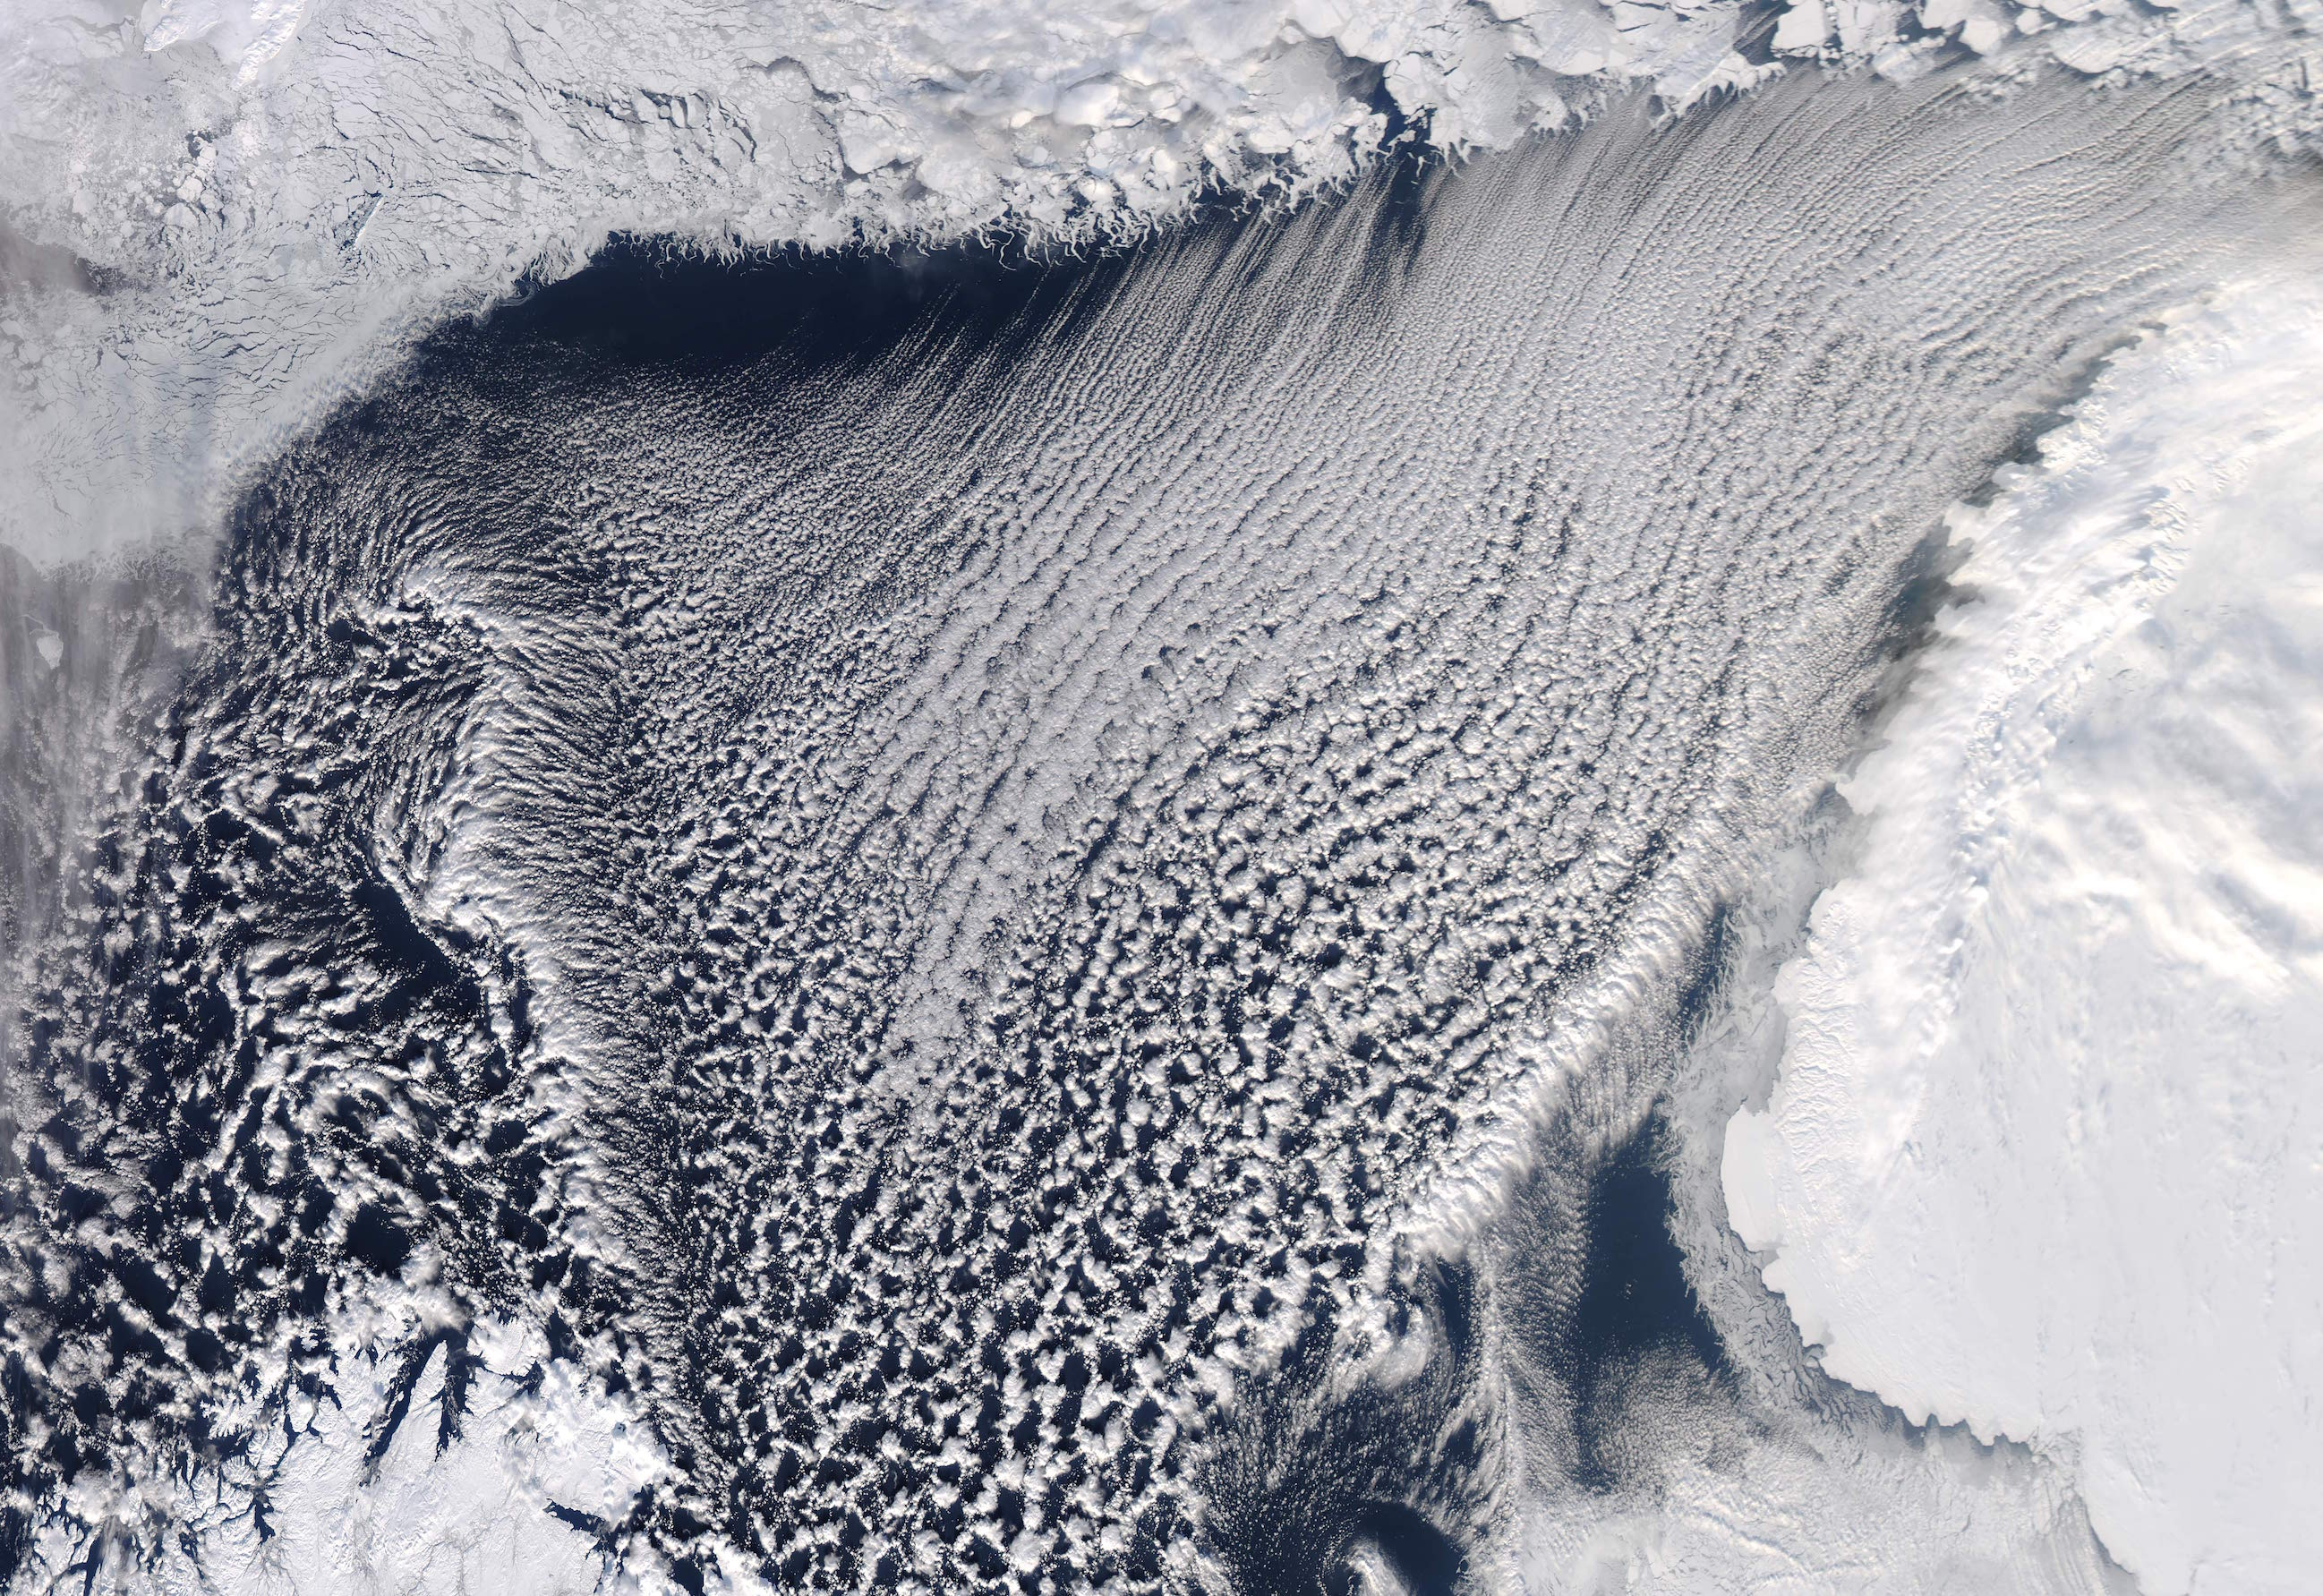 Today's Image of the Day comes from the NASA Earth Observatory and features a look at cloud streets and sea ice extent in the Barents Sea.